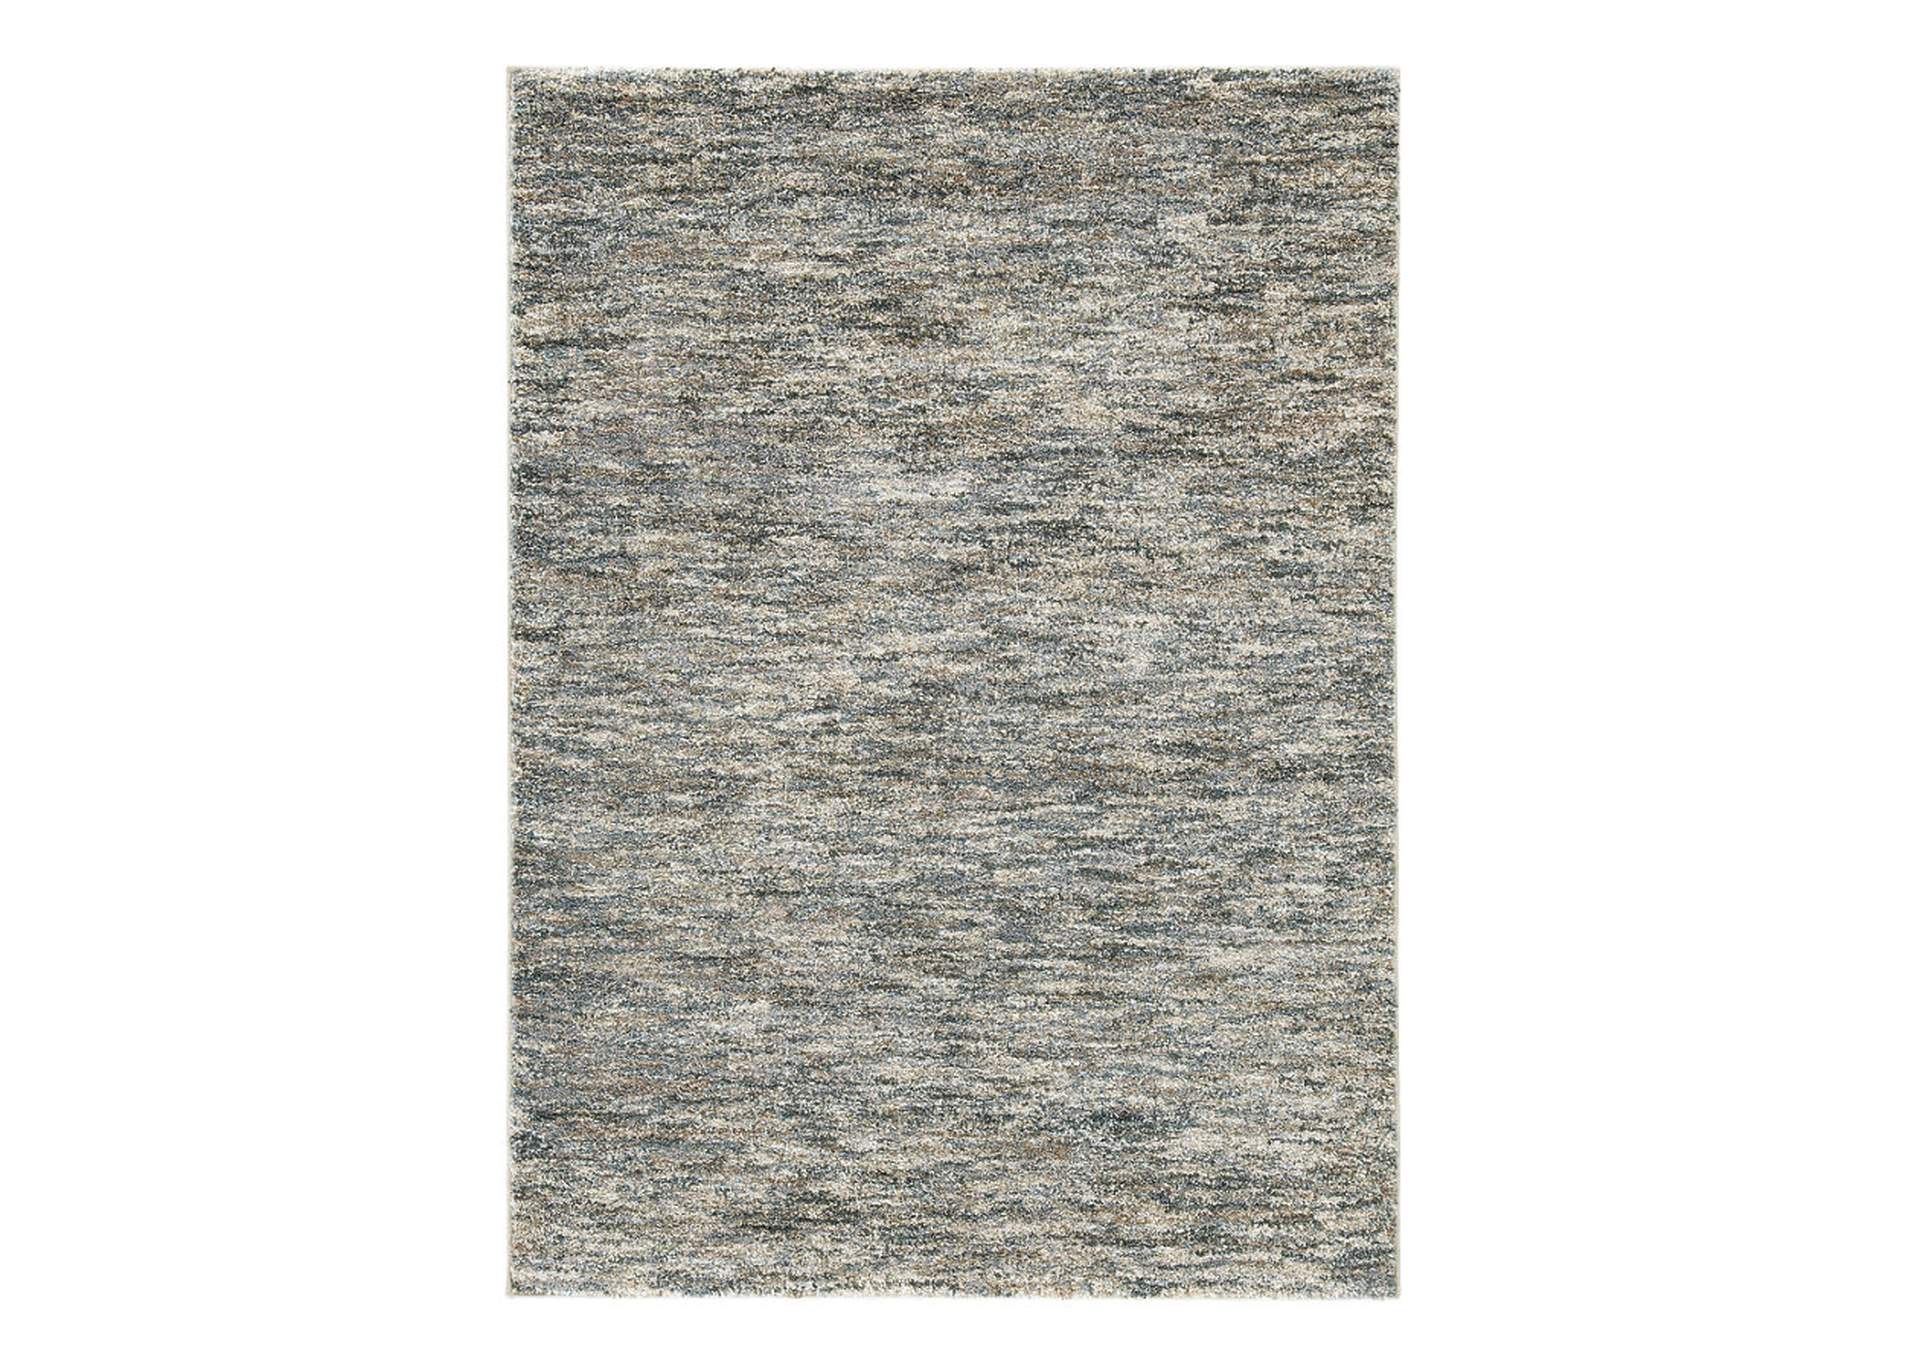 Marnin Tan/Blue/Cream Medium Rug,Signature Design By Ashley